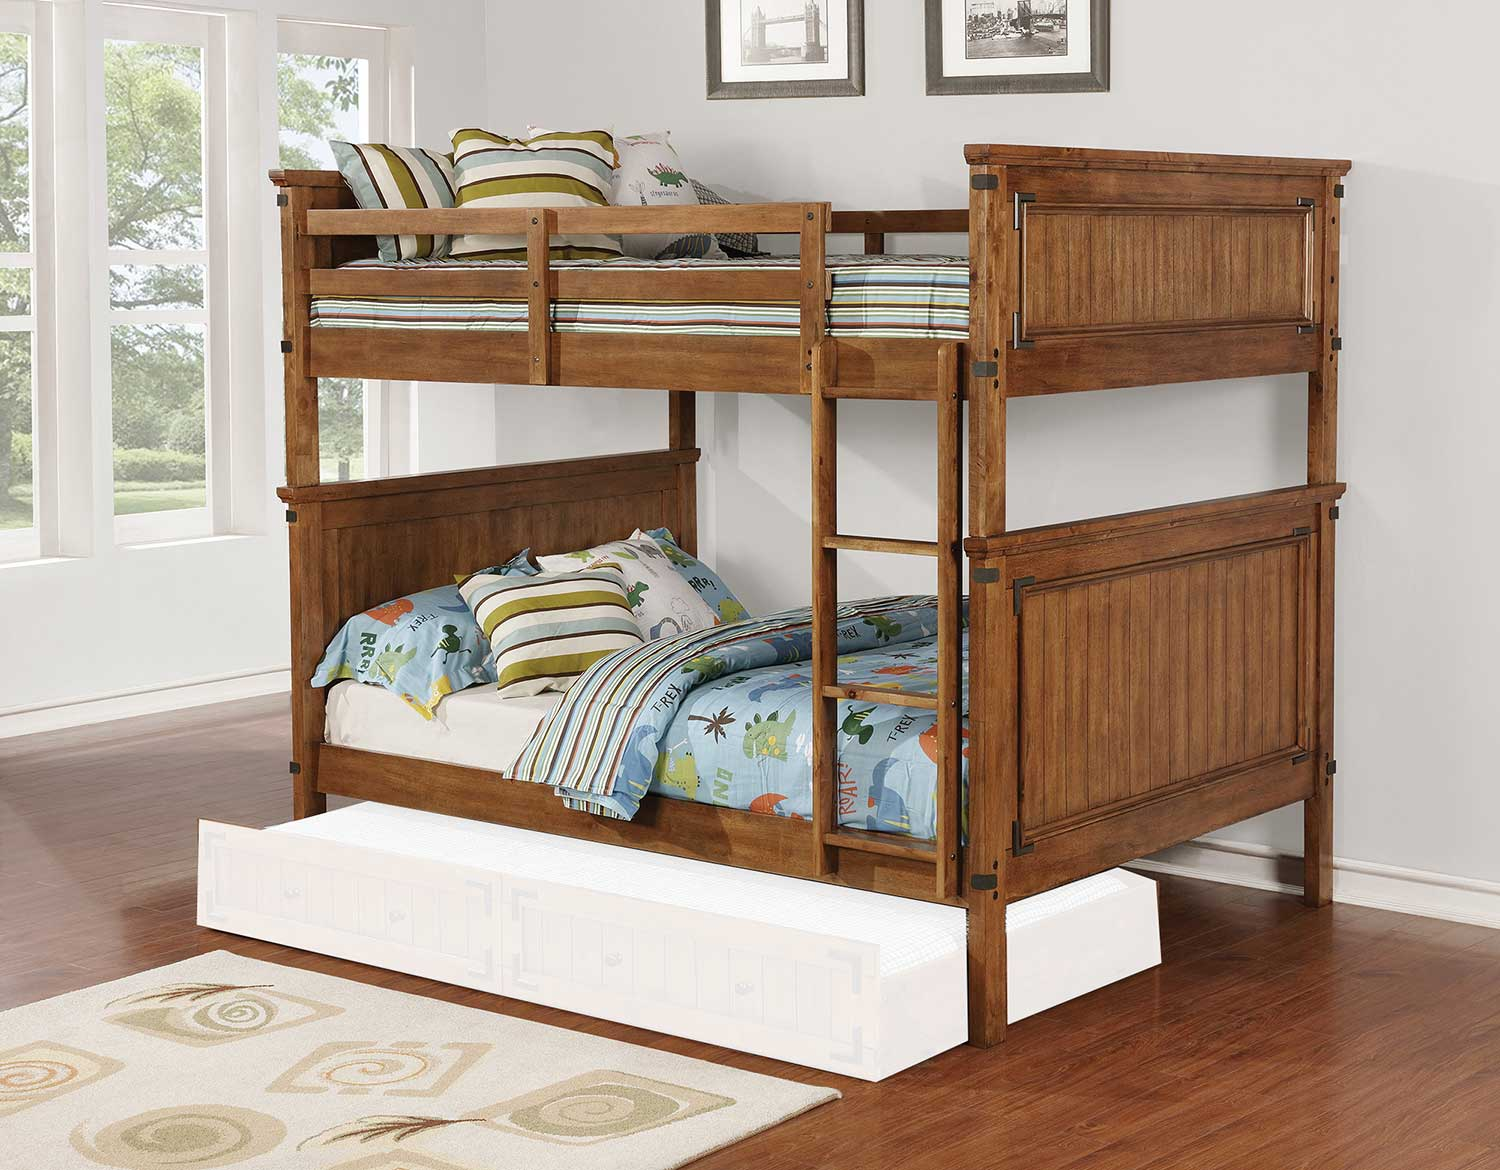 Coaster Coronado Full/Full Size Bunk Bed - Rustic Honey